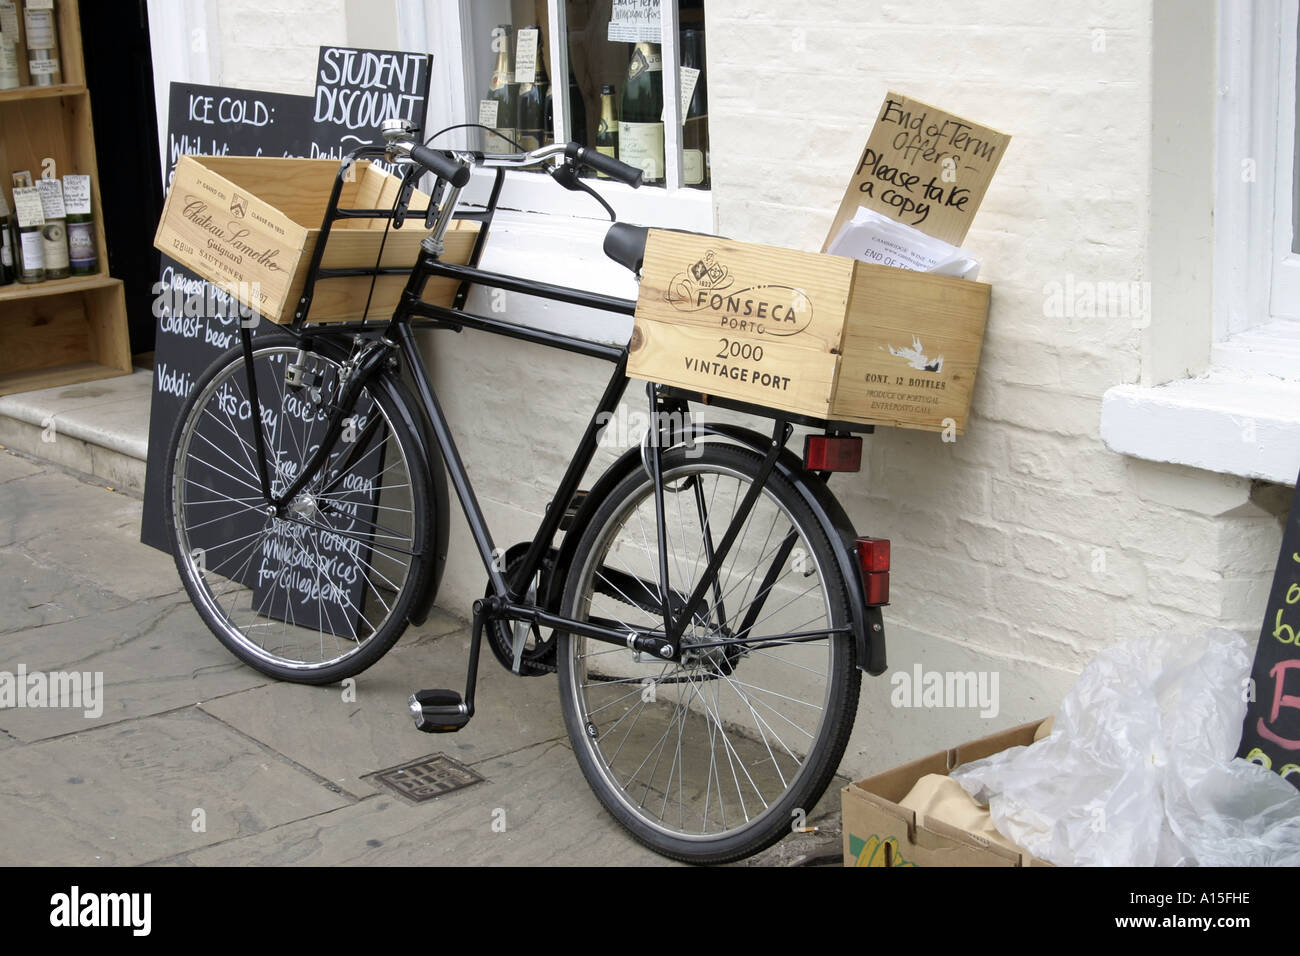 Grocers bicycle Cambridge outside a wine merchants store - Stock Image